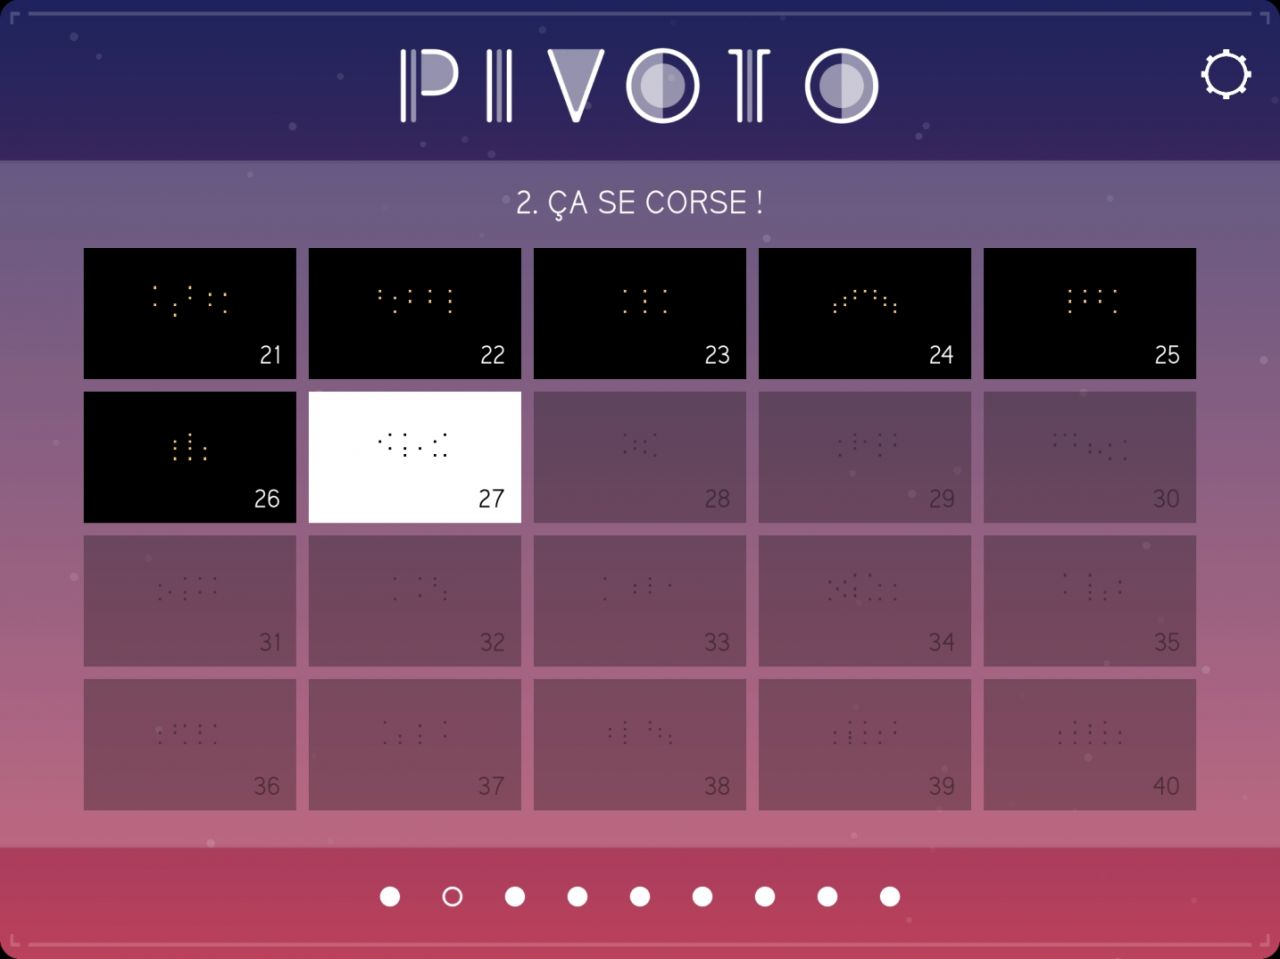 PIVOTO (copie d'écran 2 sur iPhone / iPad)